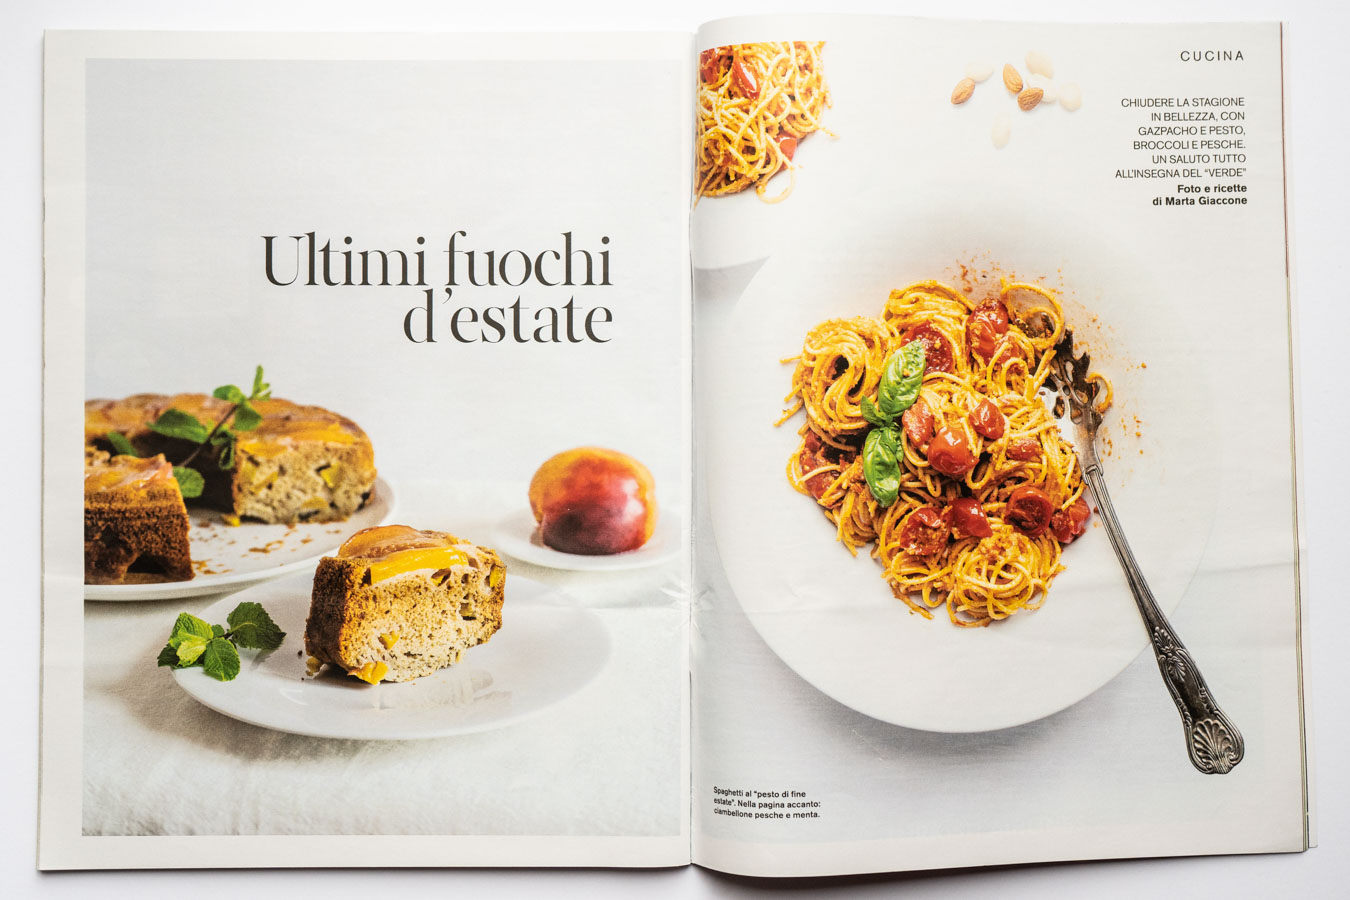 Marta Giaccone, food editorial, D la Repubblica magazine, September 2019